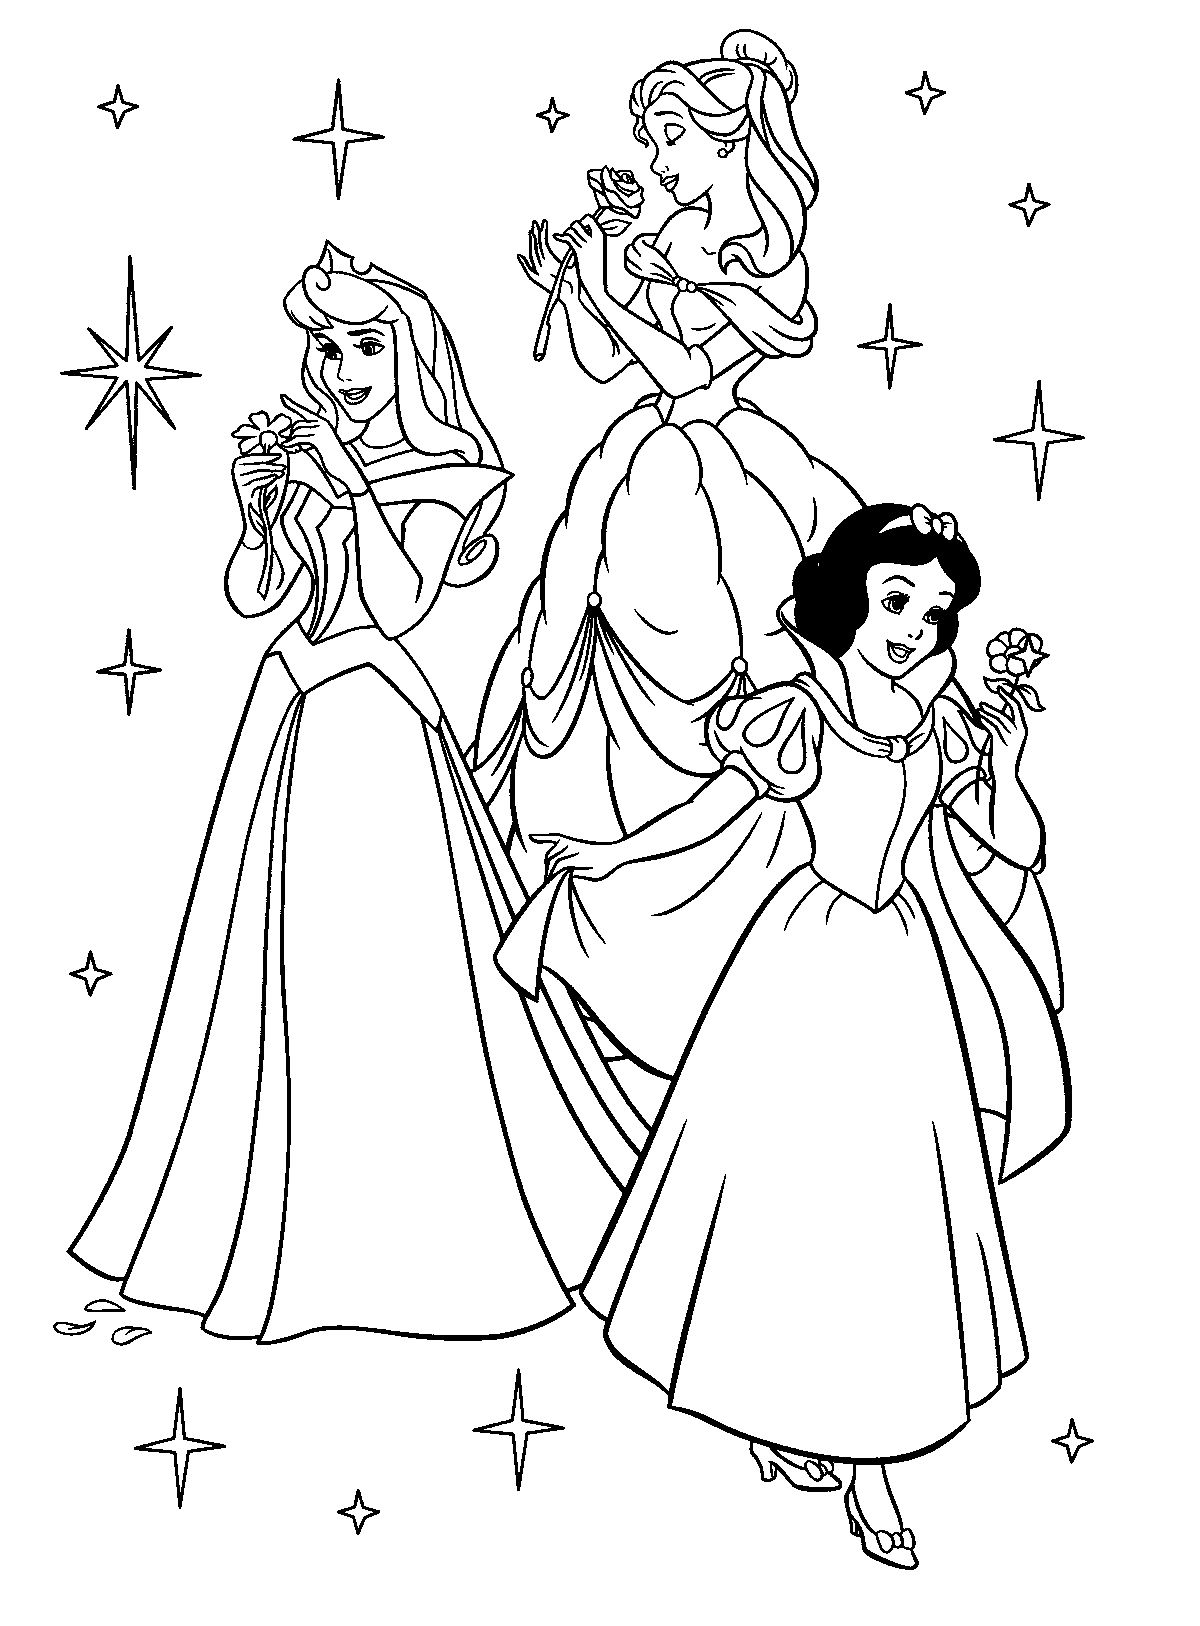 Disney Prince Coloring Pages | Coloring Pages | Pinterest | Disney ...